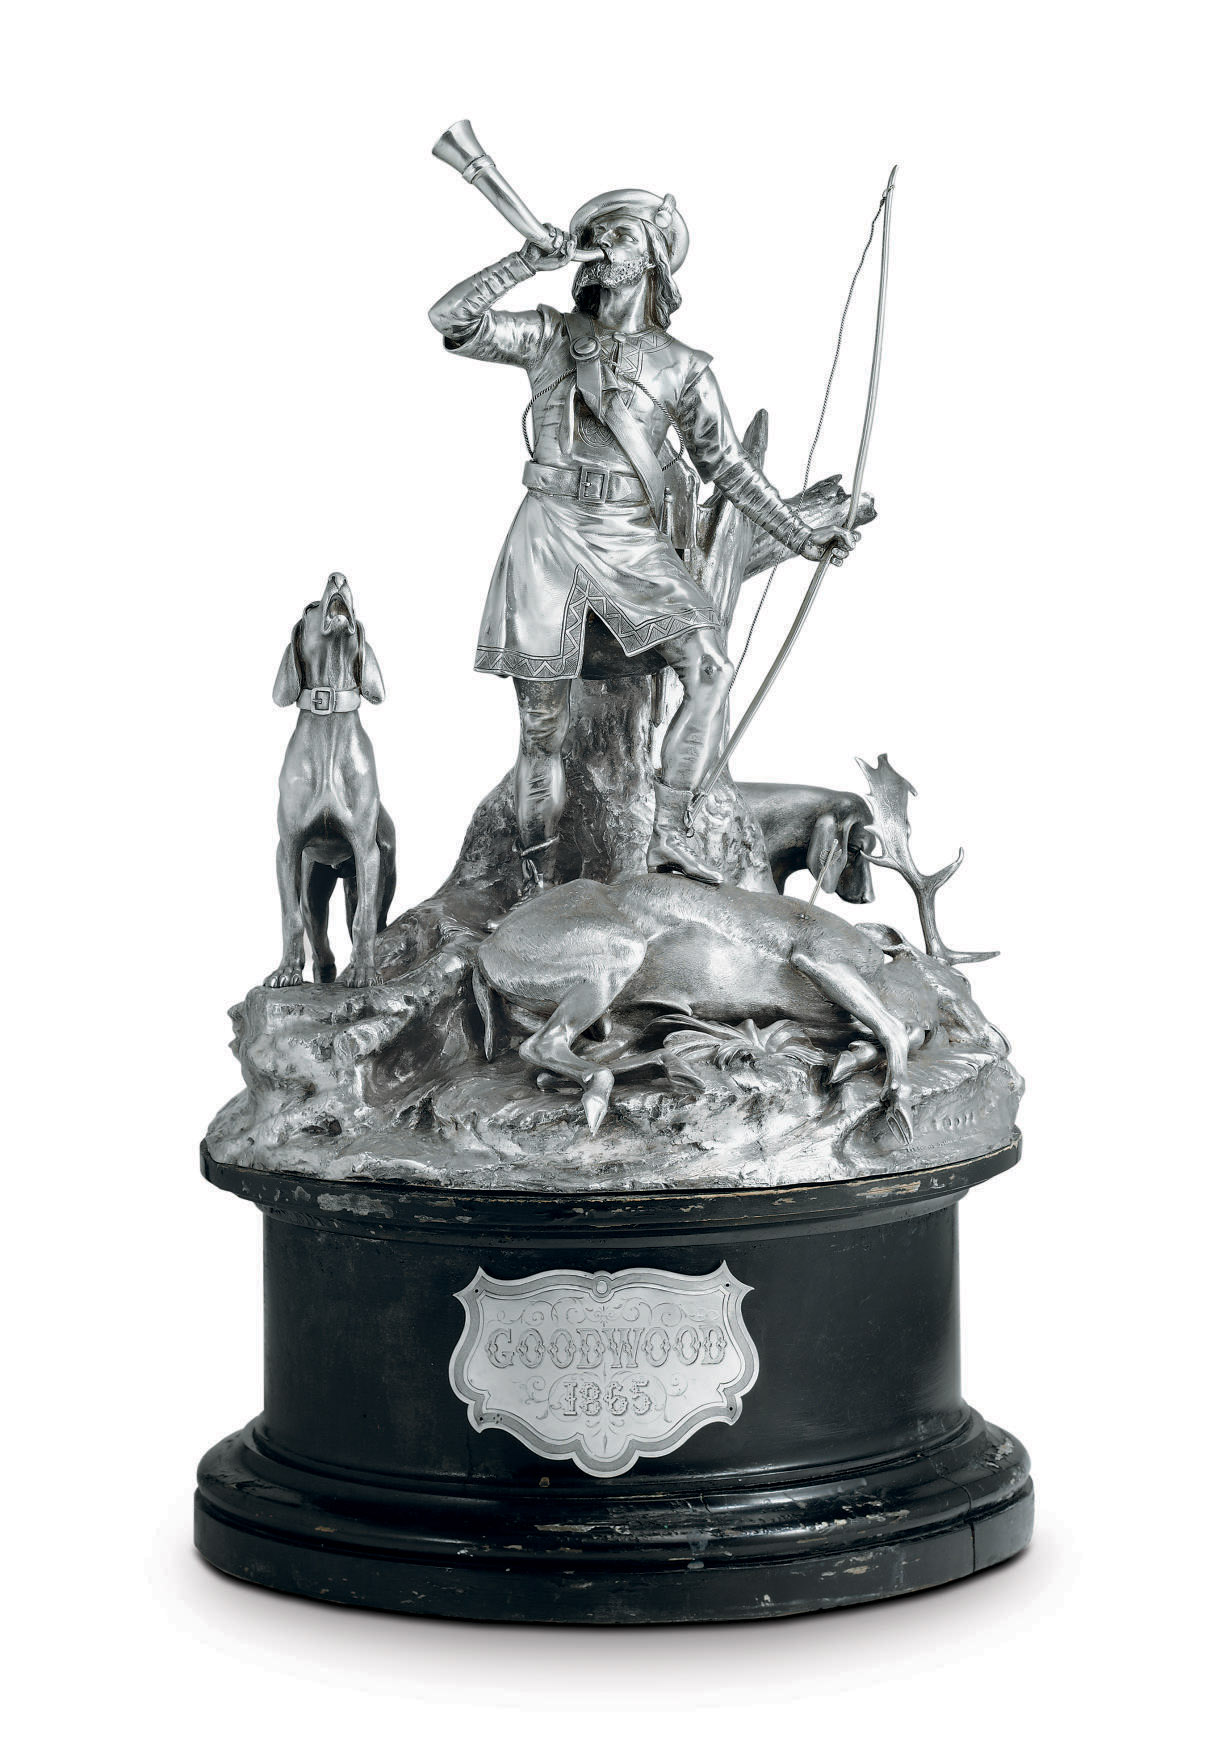 THE STEWARDS' CUP, GOODWOOD 1865: A VICTORIAN SILVER RACING TROPHY